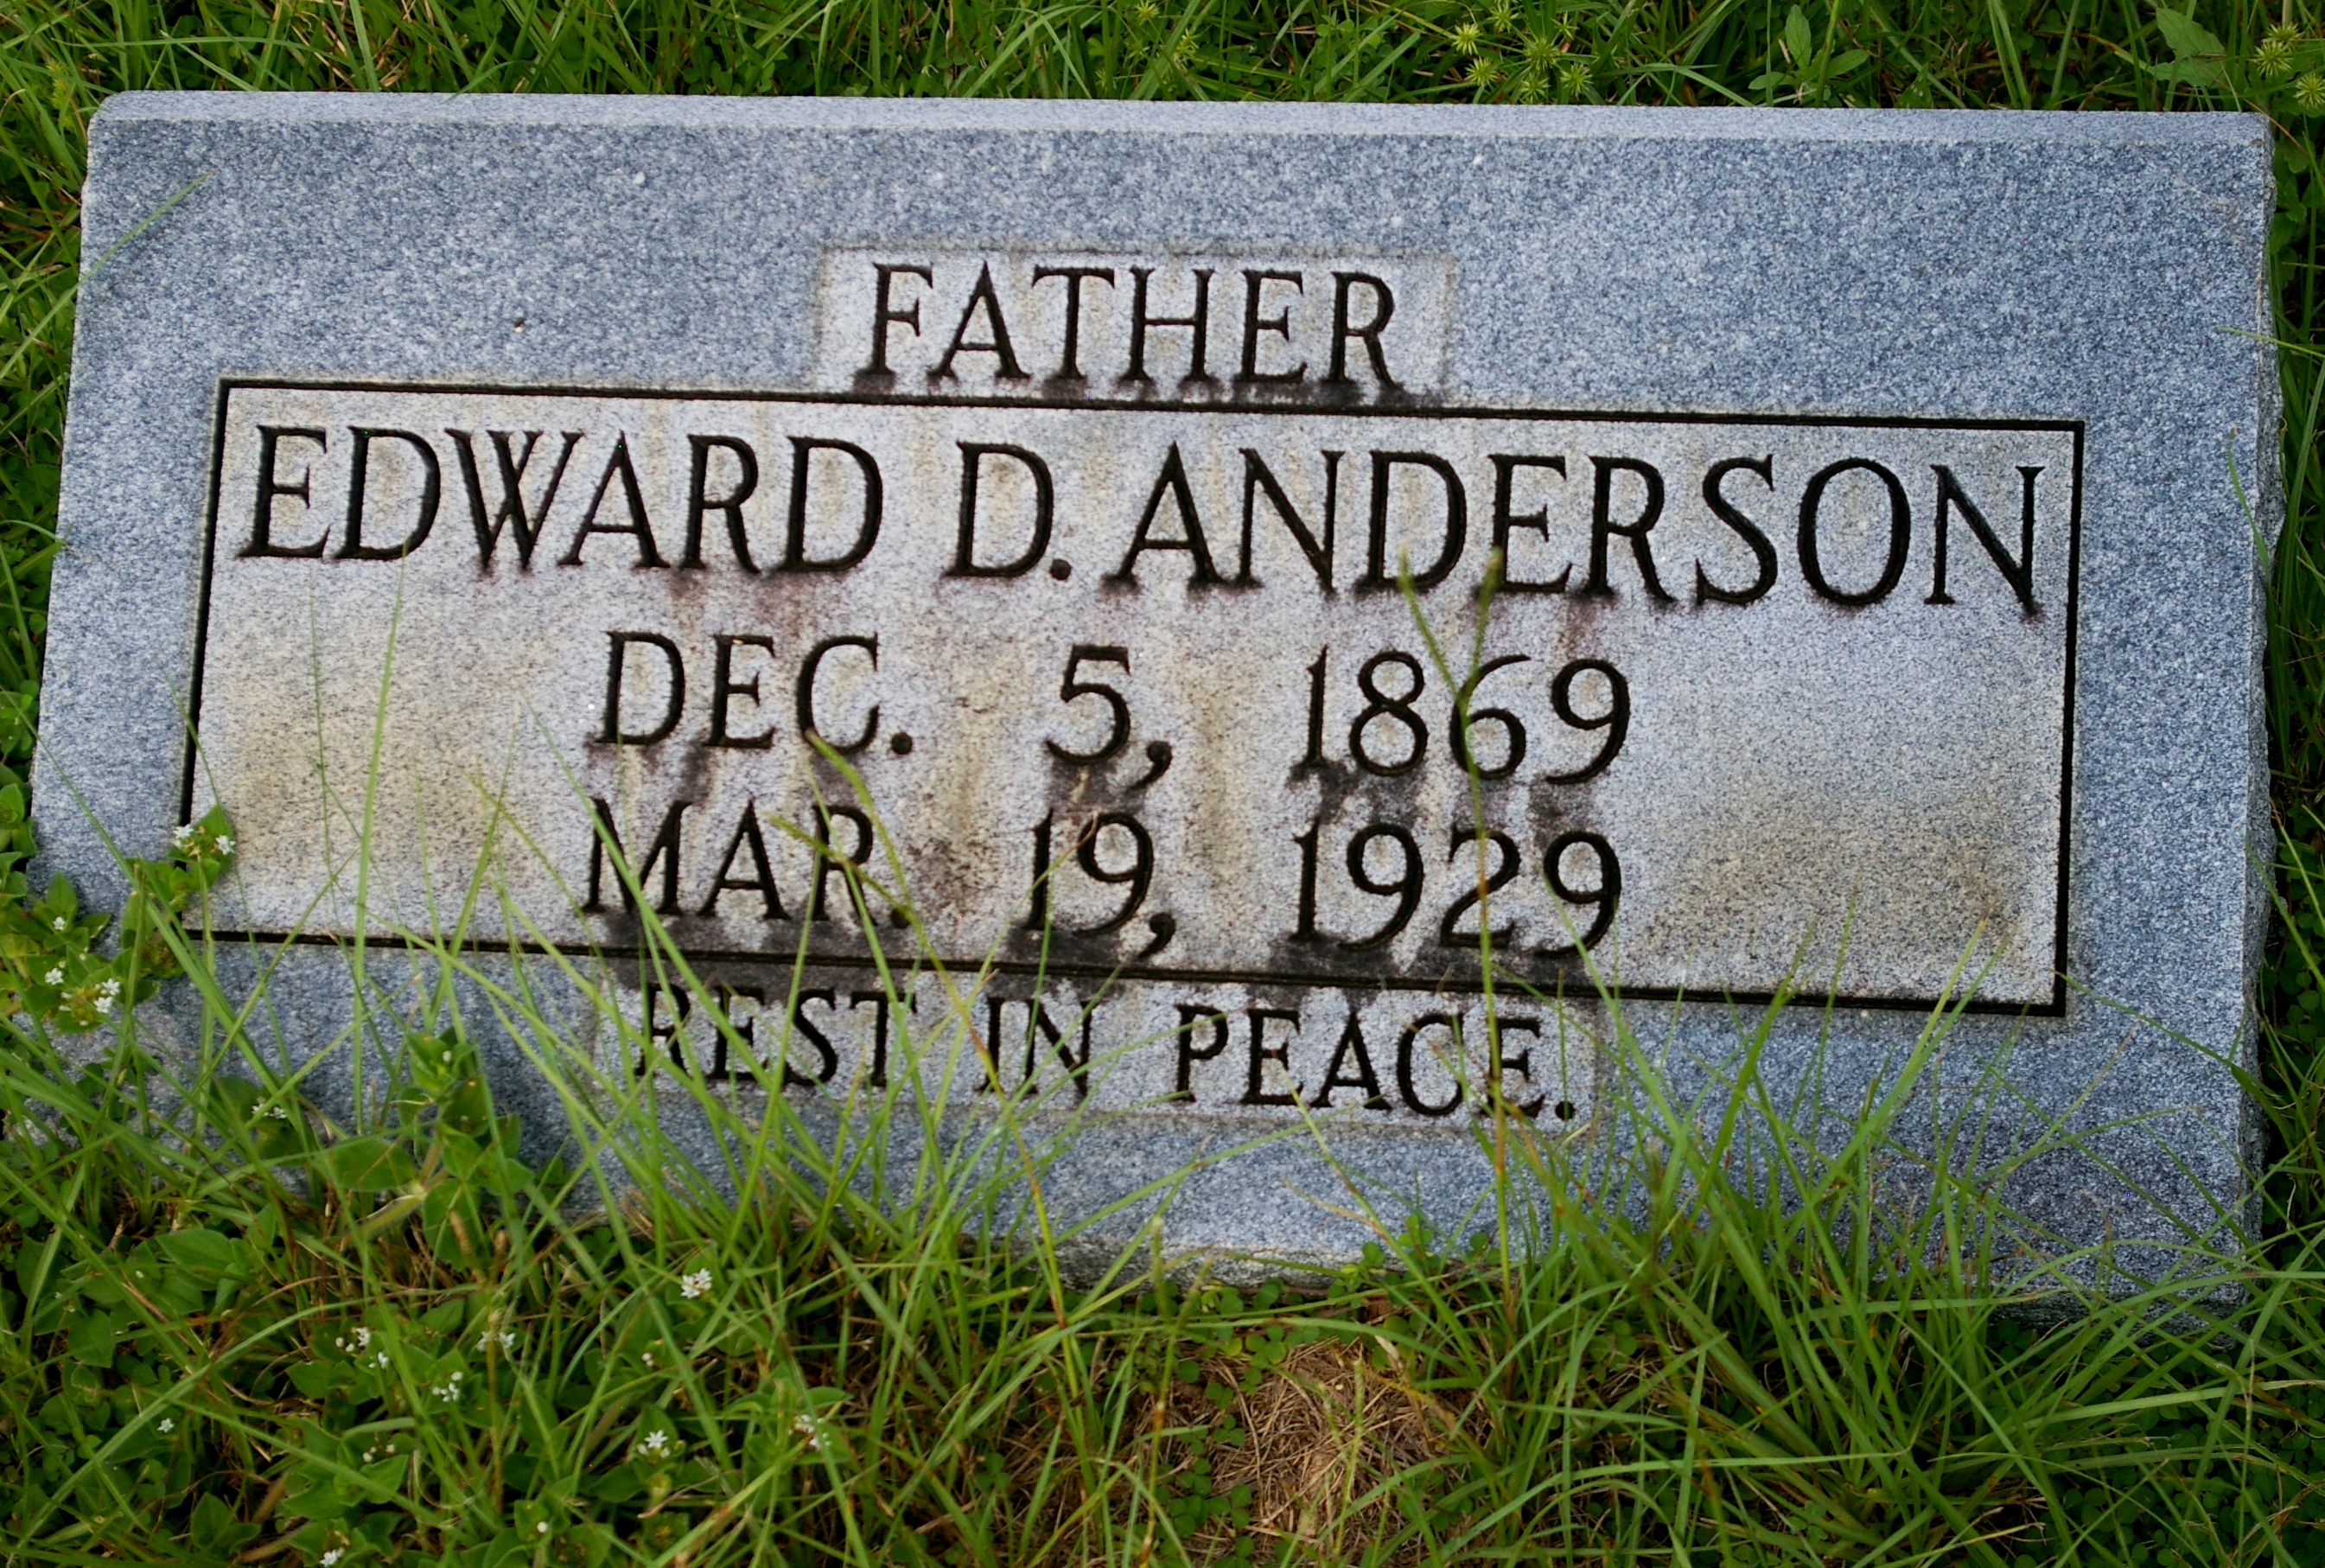 Edward D. Anderson